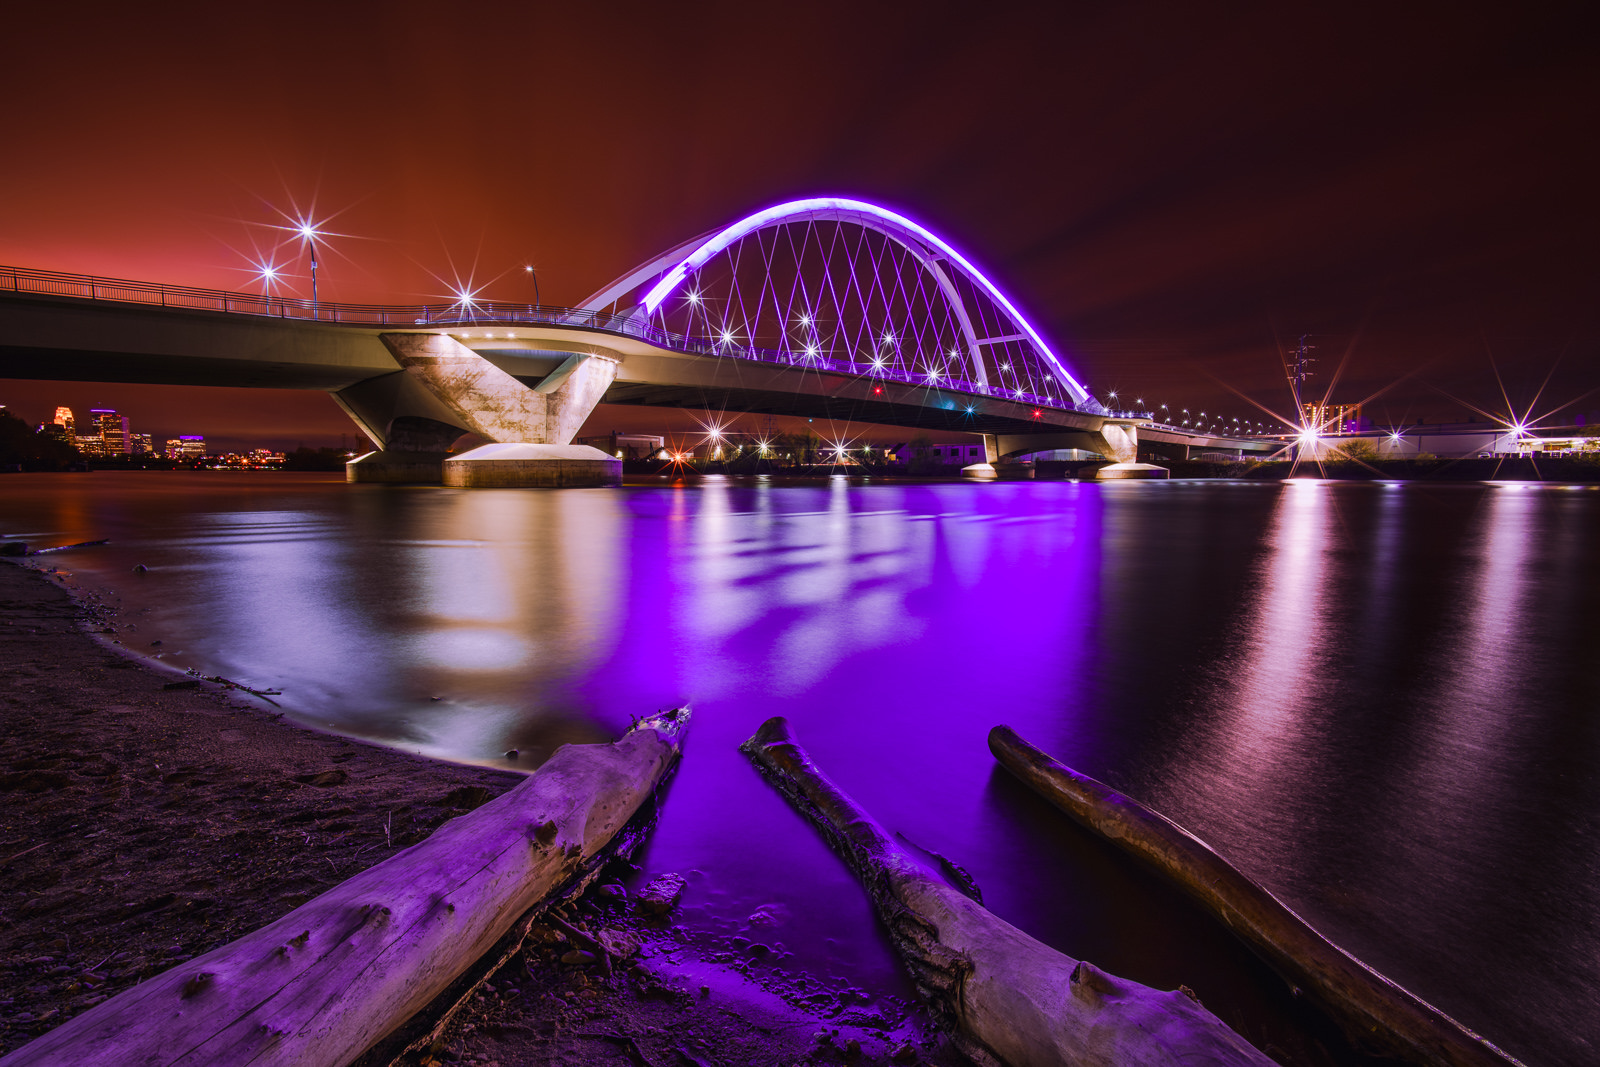 purple-rain-minneapolis